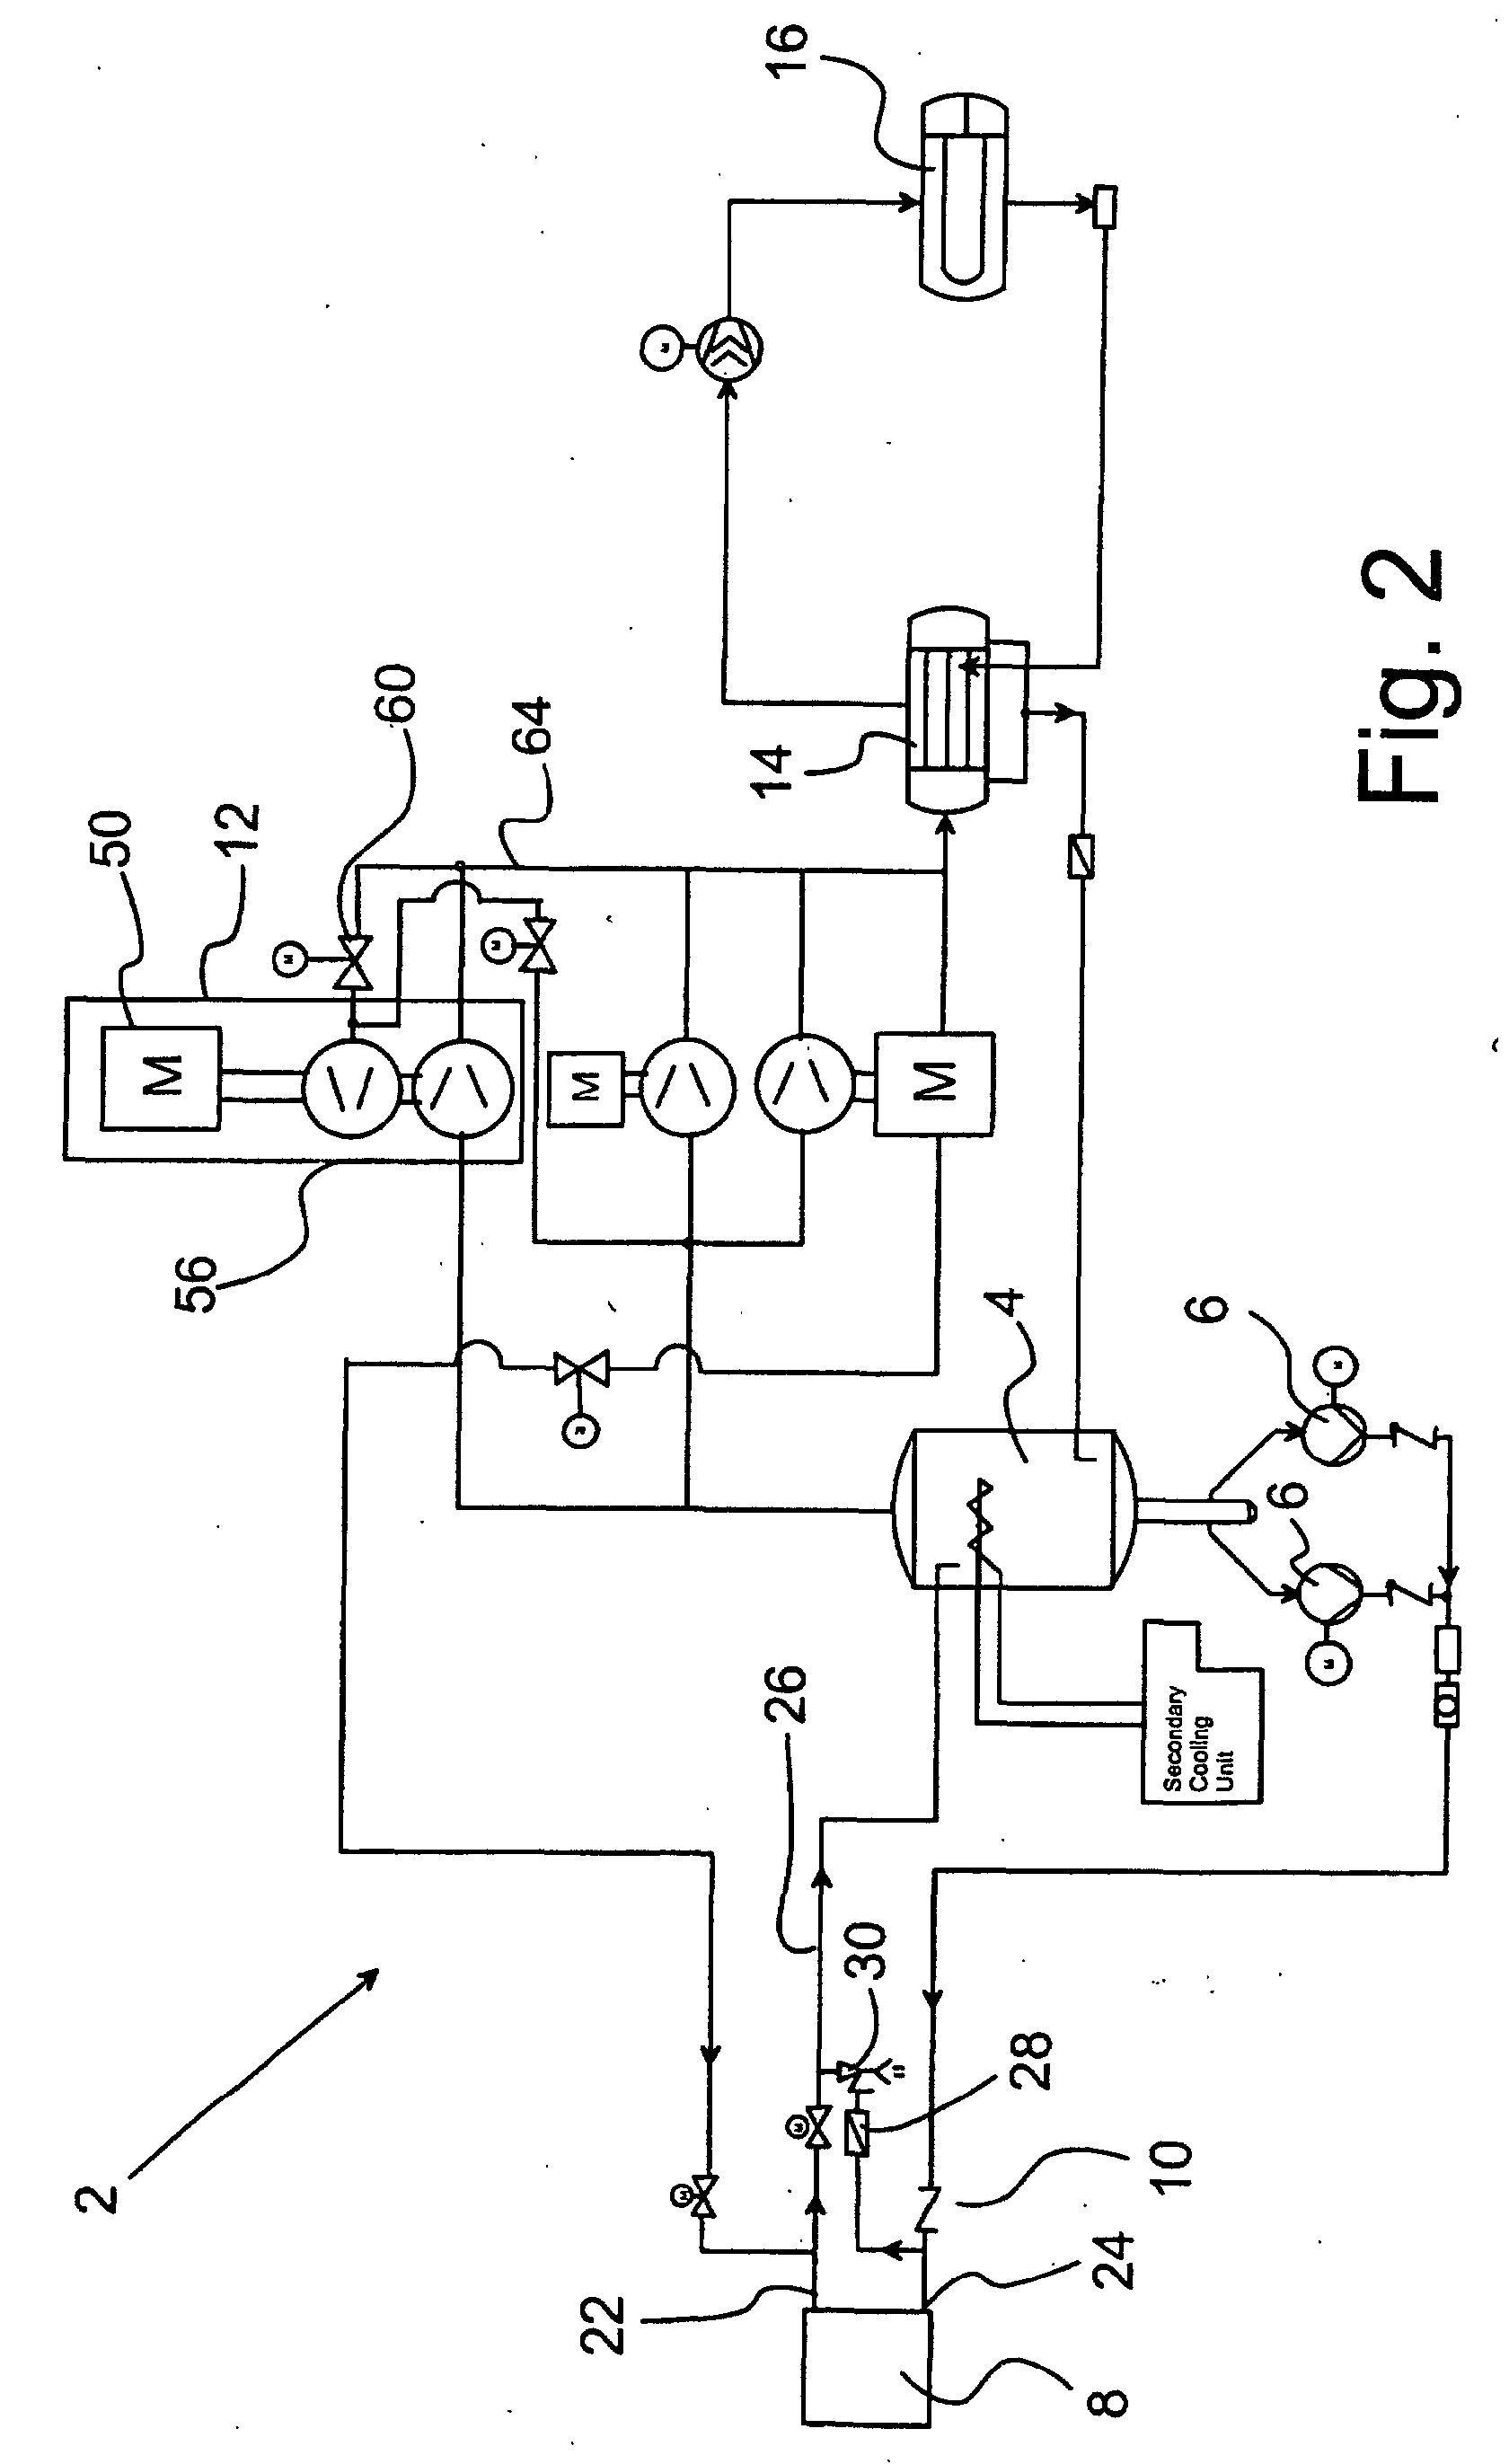 00200001 larkin freezer wiring diagram larkin wiring diagrams collection larkin evaporator wiring diagram at n-0.co